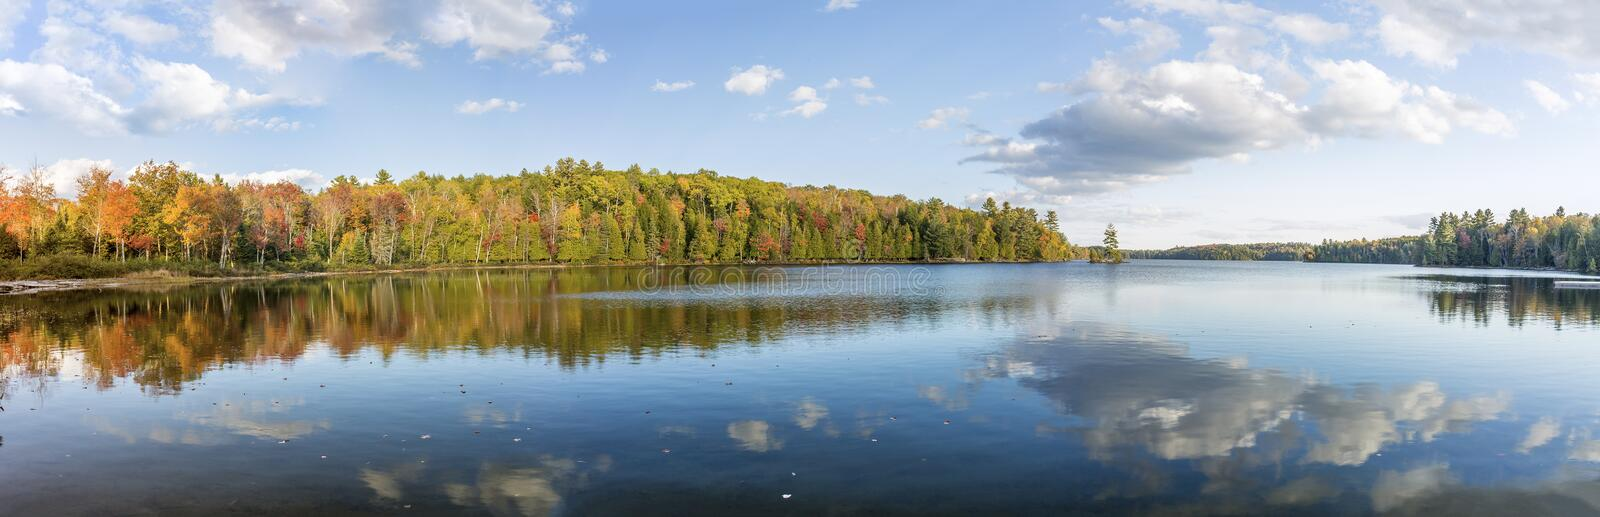 Panorama View of Fall Colors Reflecting on a Lake royalty free stock image